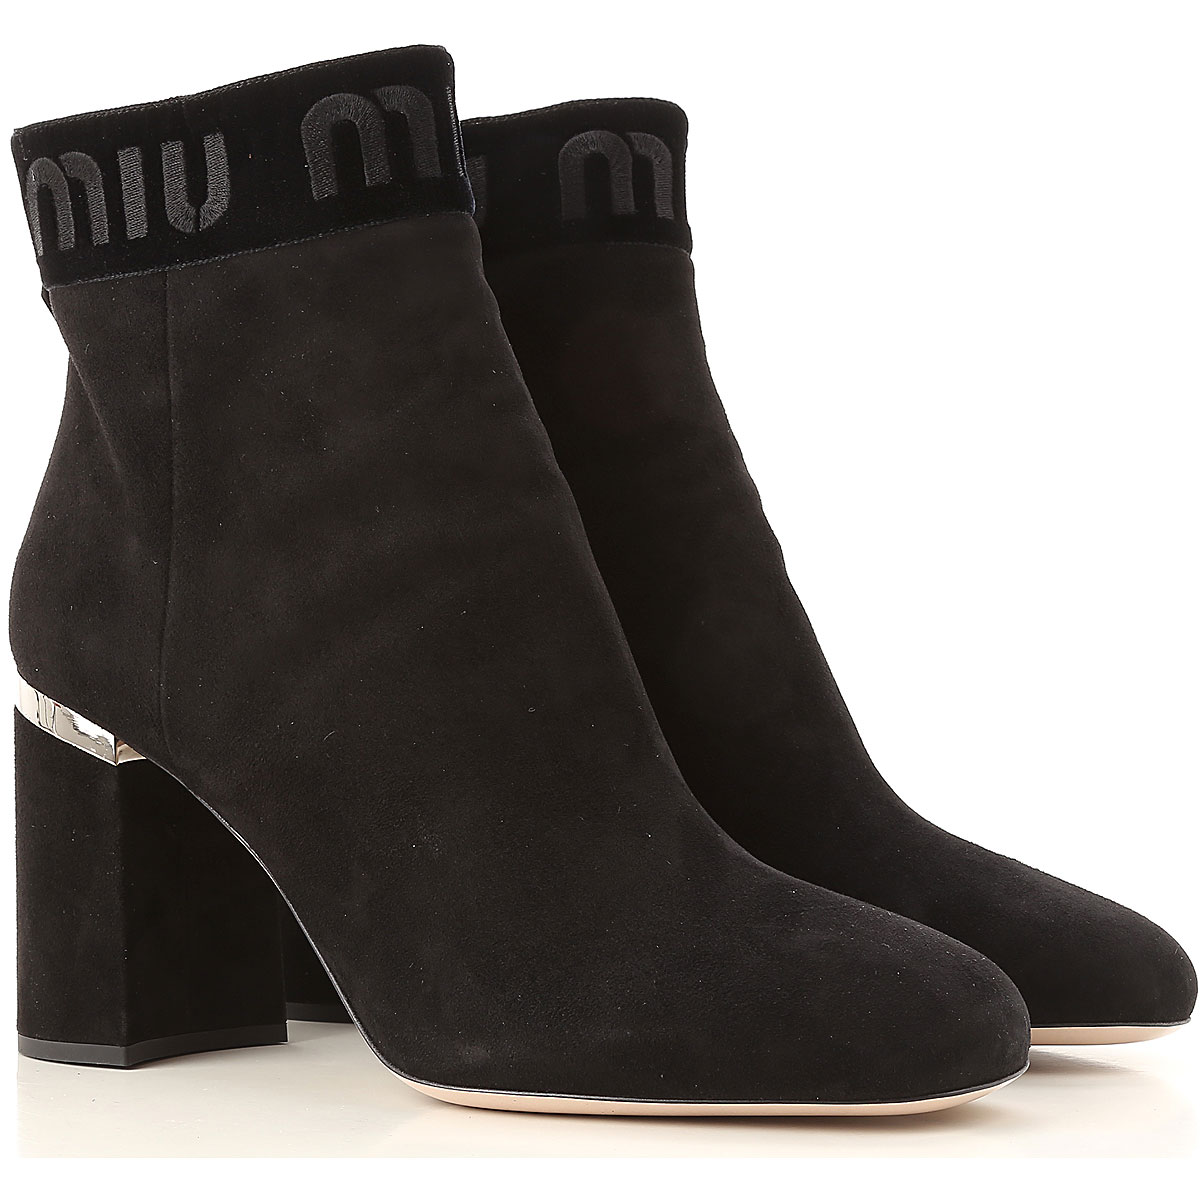 Image of Miu Miu Boots for Women, Booties, Black, Suede leather, 2017, 10 6 6.5 7 7.5 8 8.5 9 9.5